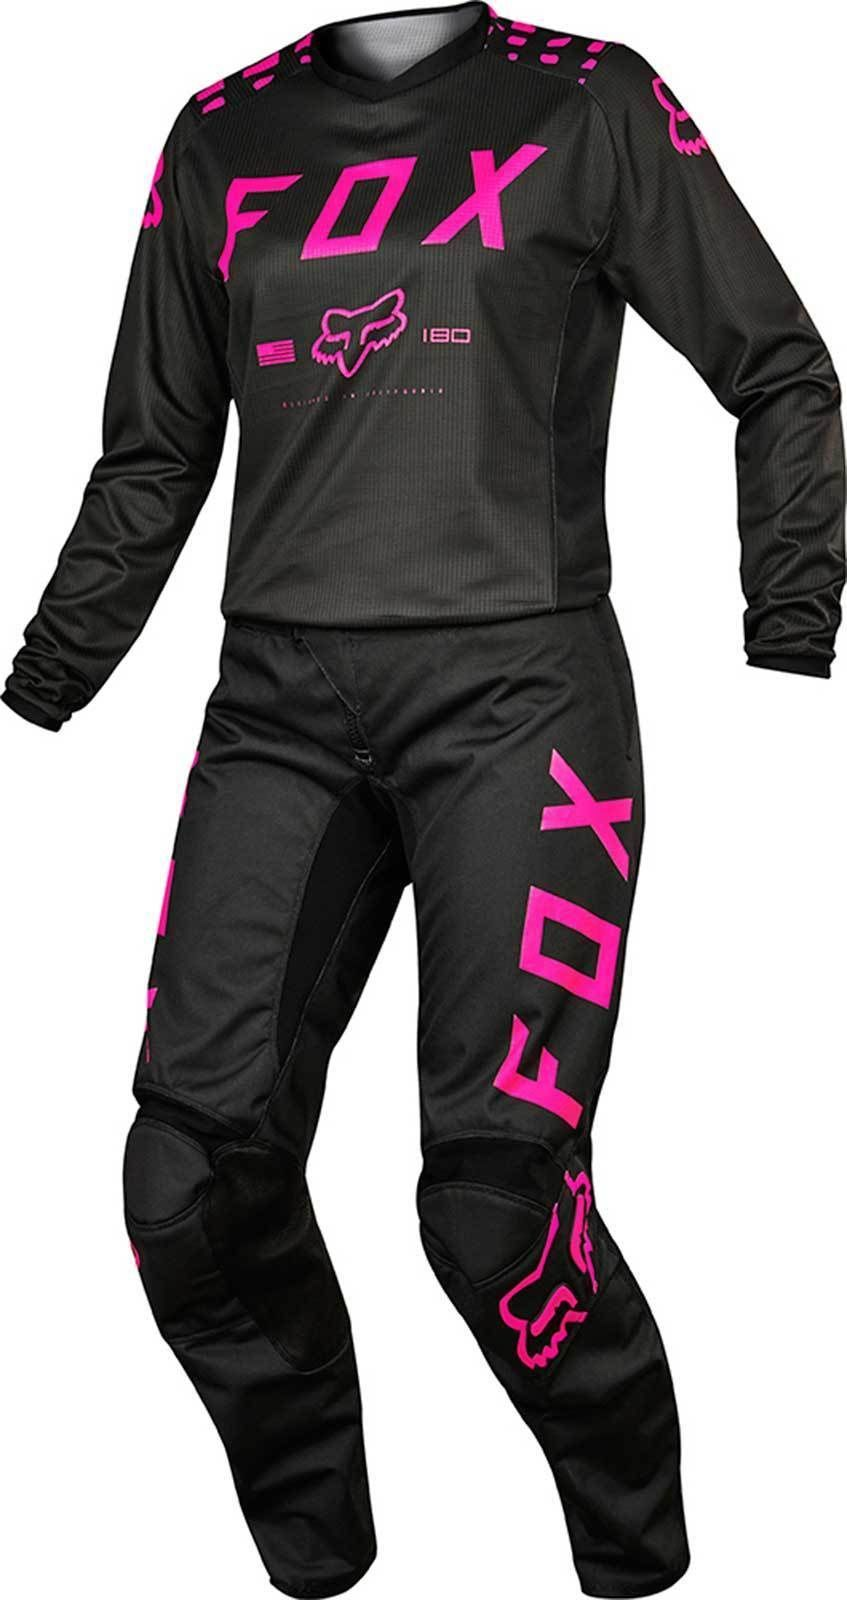 2017 Fox Racing Women S 180 Combo - Motocross Mx Atv Dirt Bike Gear Jersey  Pant https 00aed7046e